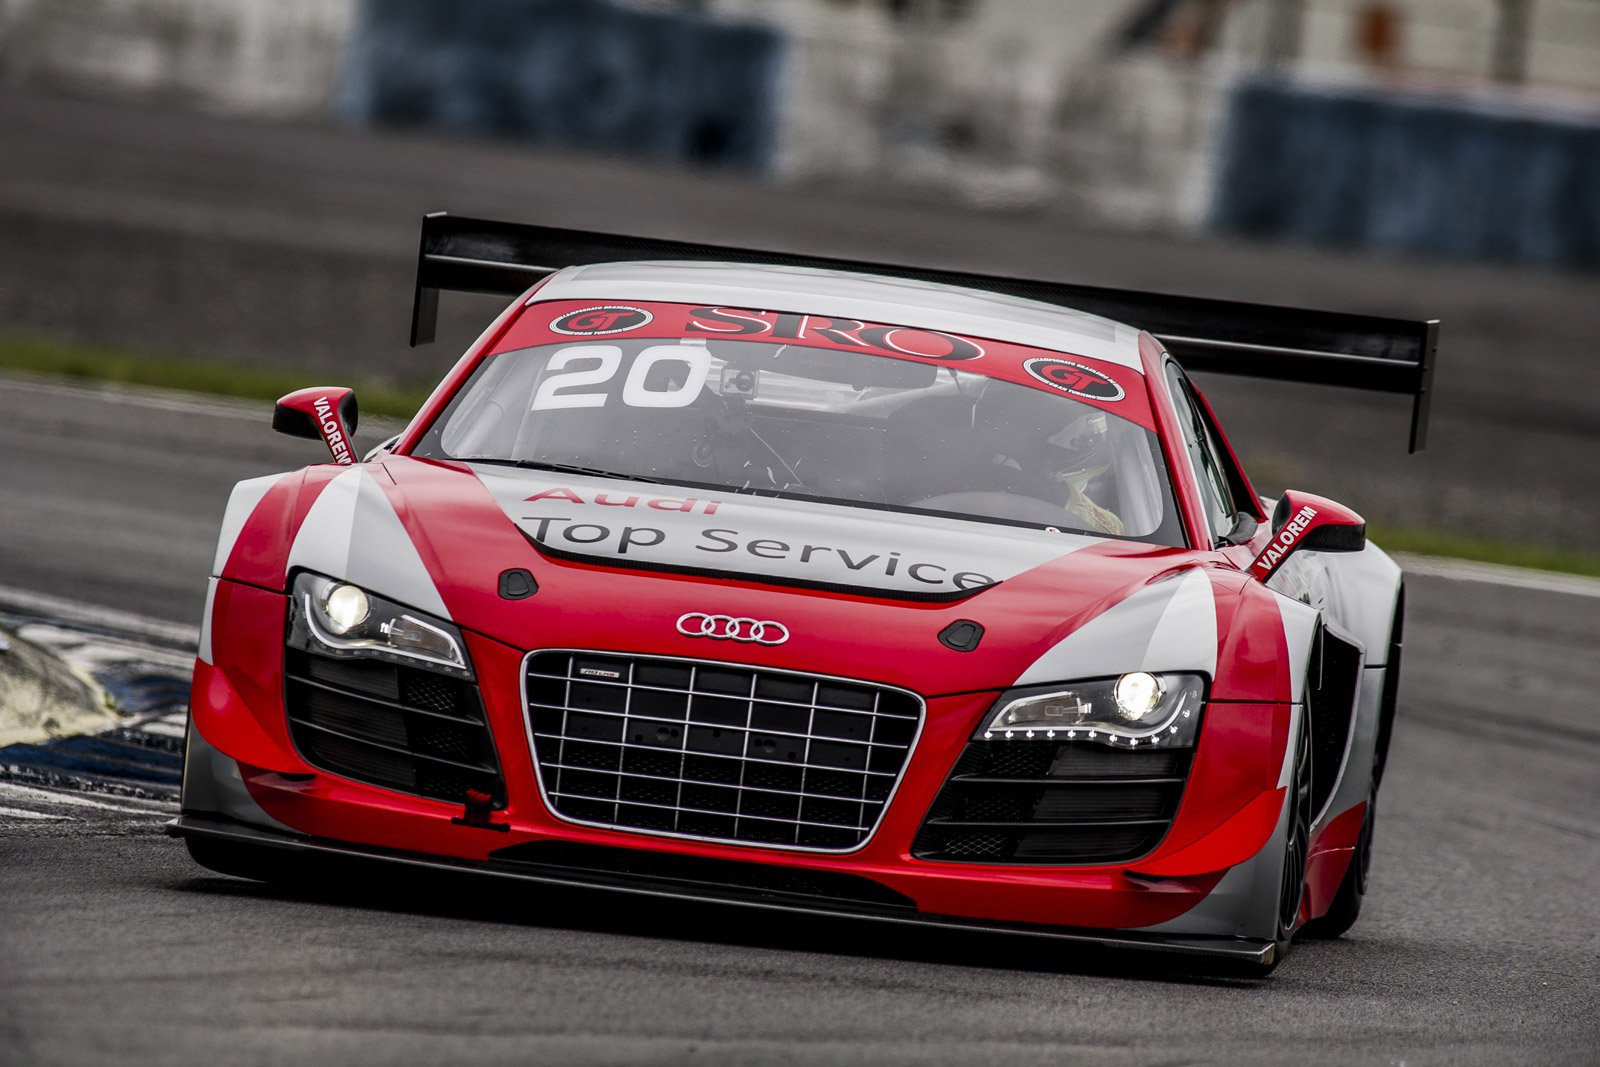 Rally Car Wallpaper Snow Seven Audi R8 Lms Ultra Race Cars To Tackle 2013 Spa 24 Hours